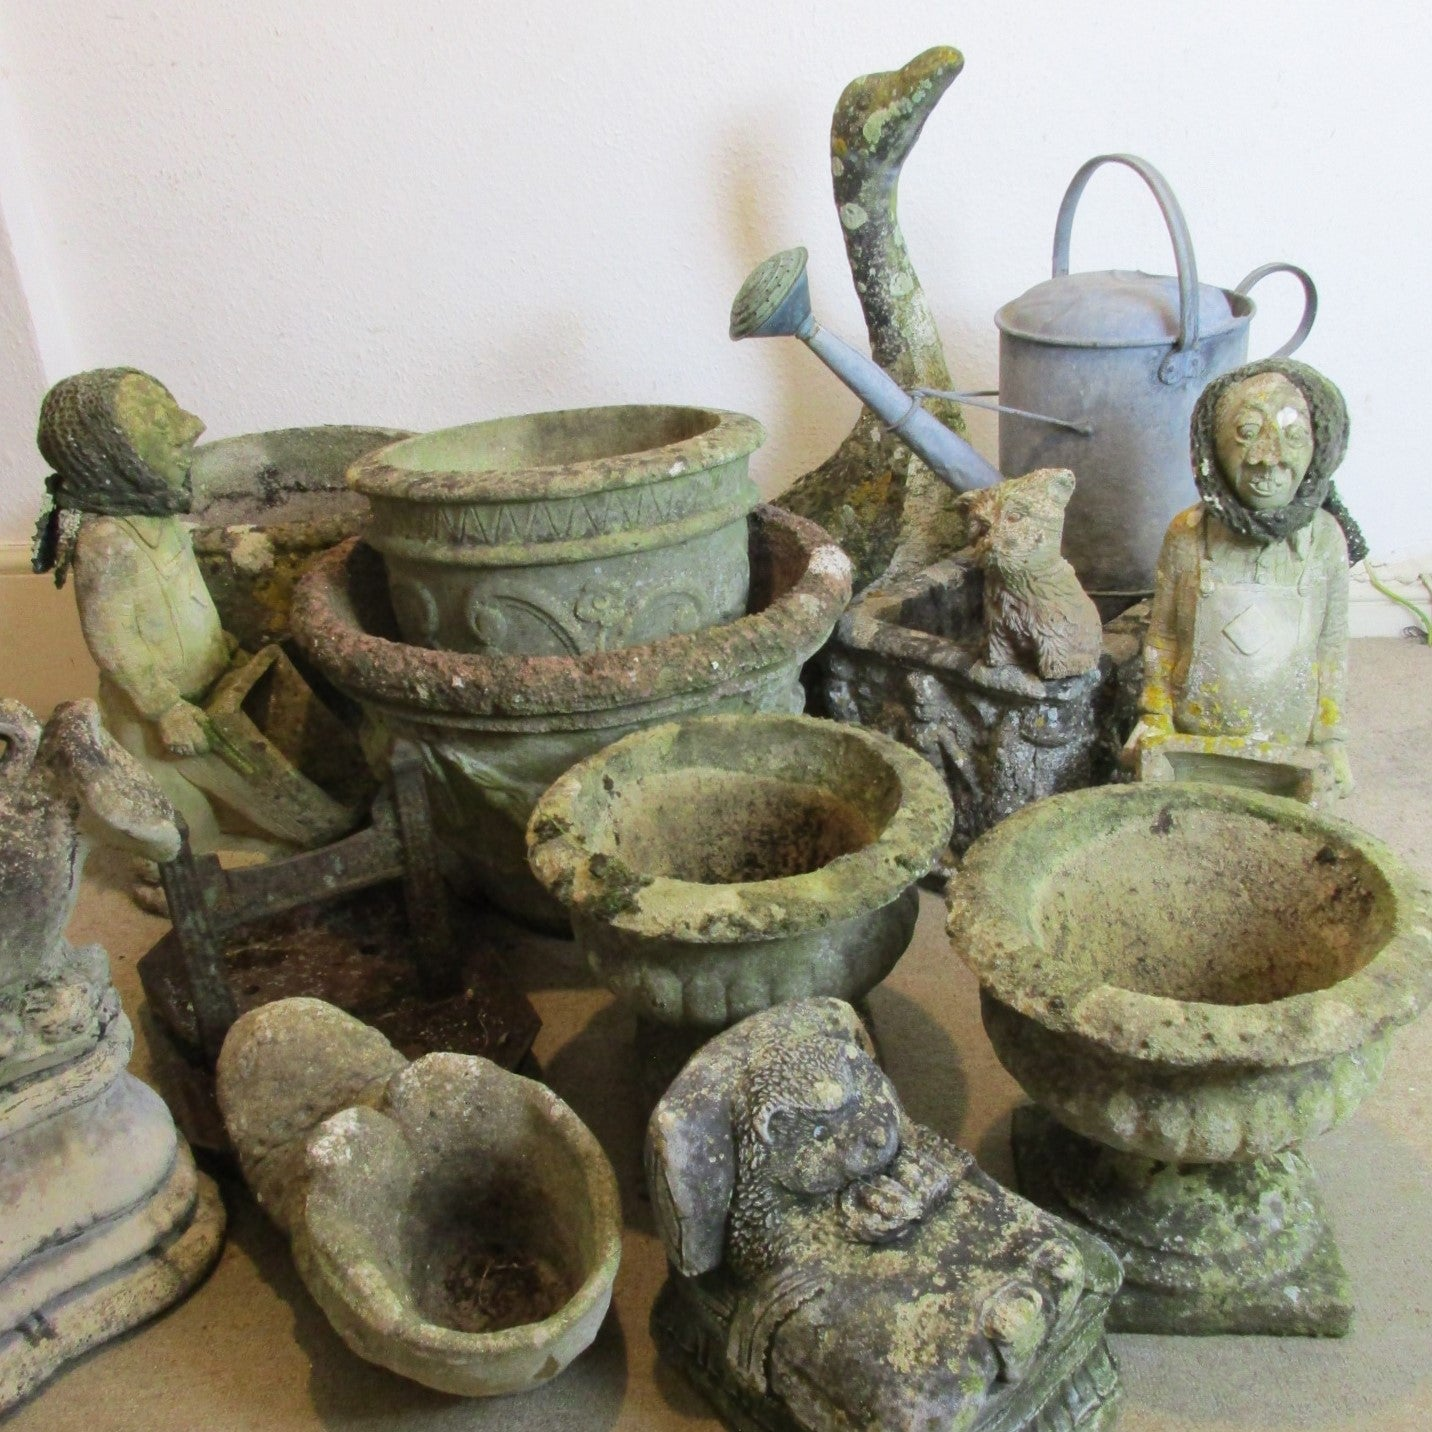 Spring into buying antique and vintage garden stuff click & collect